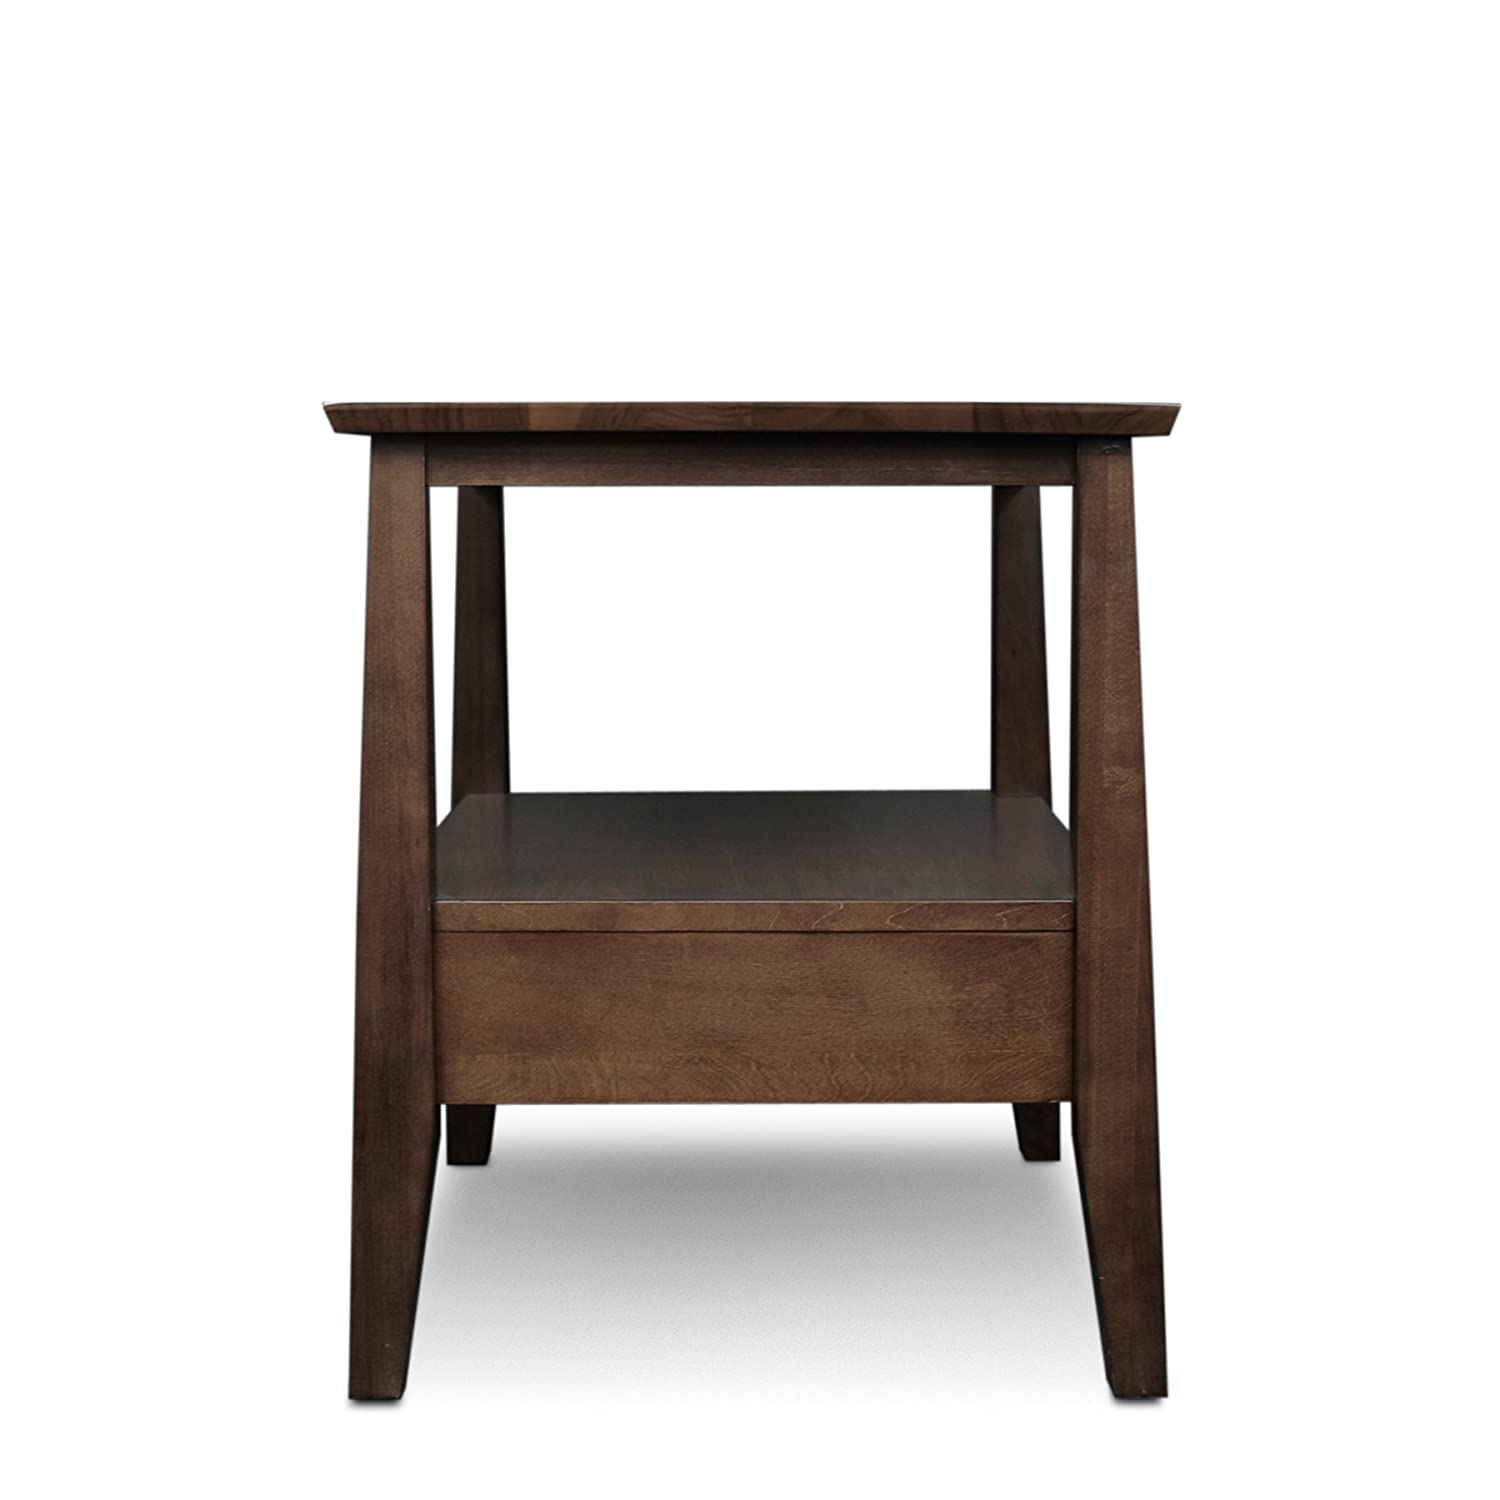 Amazoncom Leick Delton End Table with Drawer Kitchen Dining